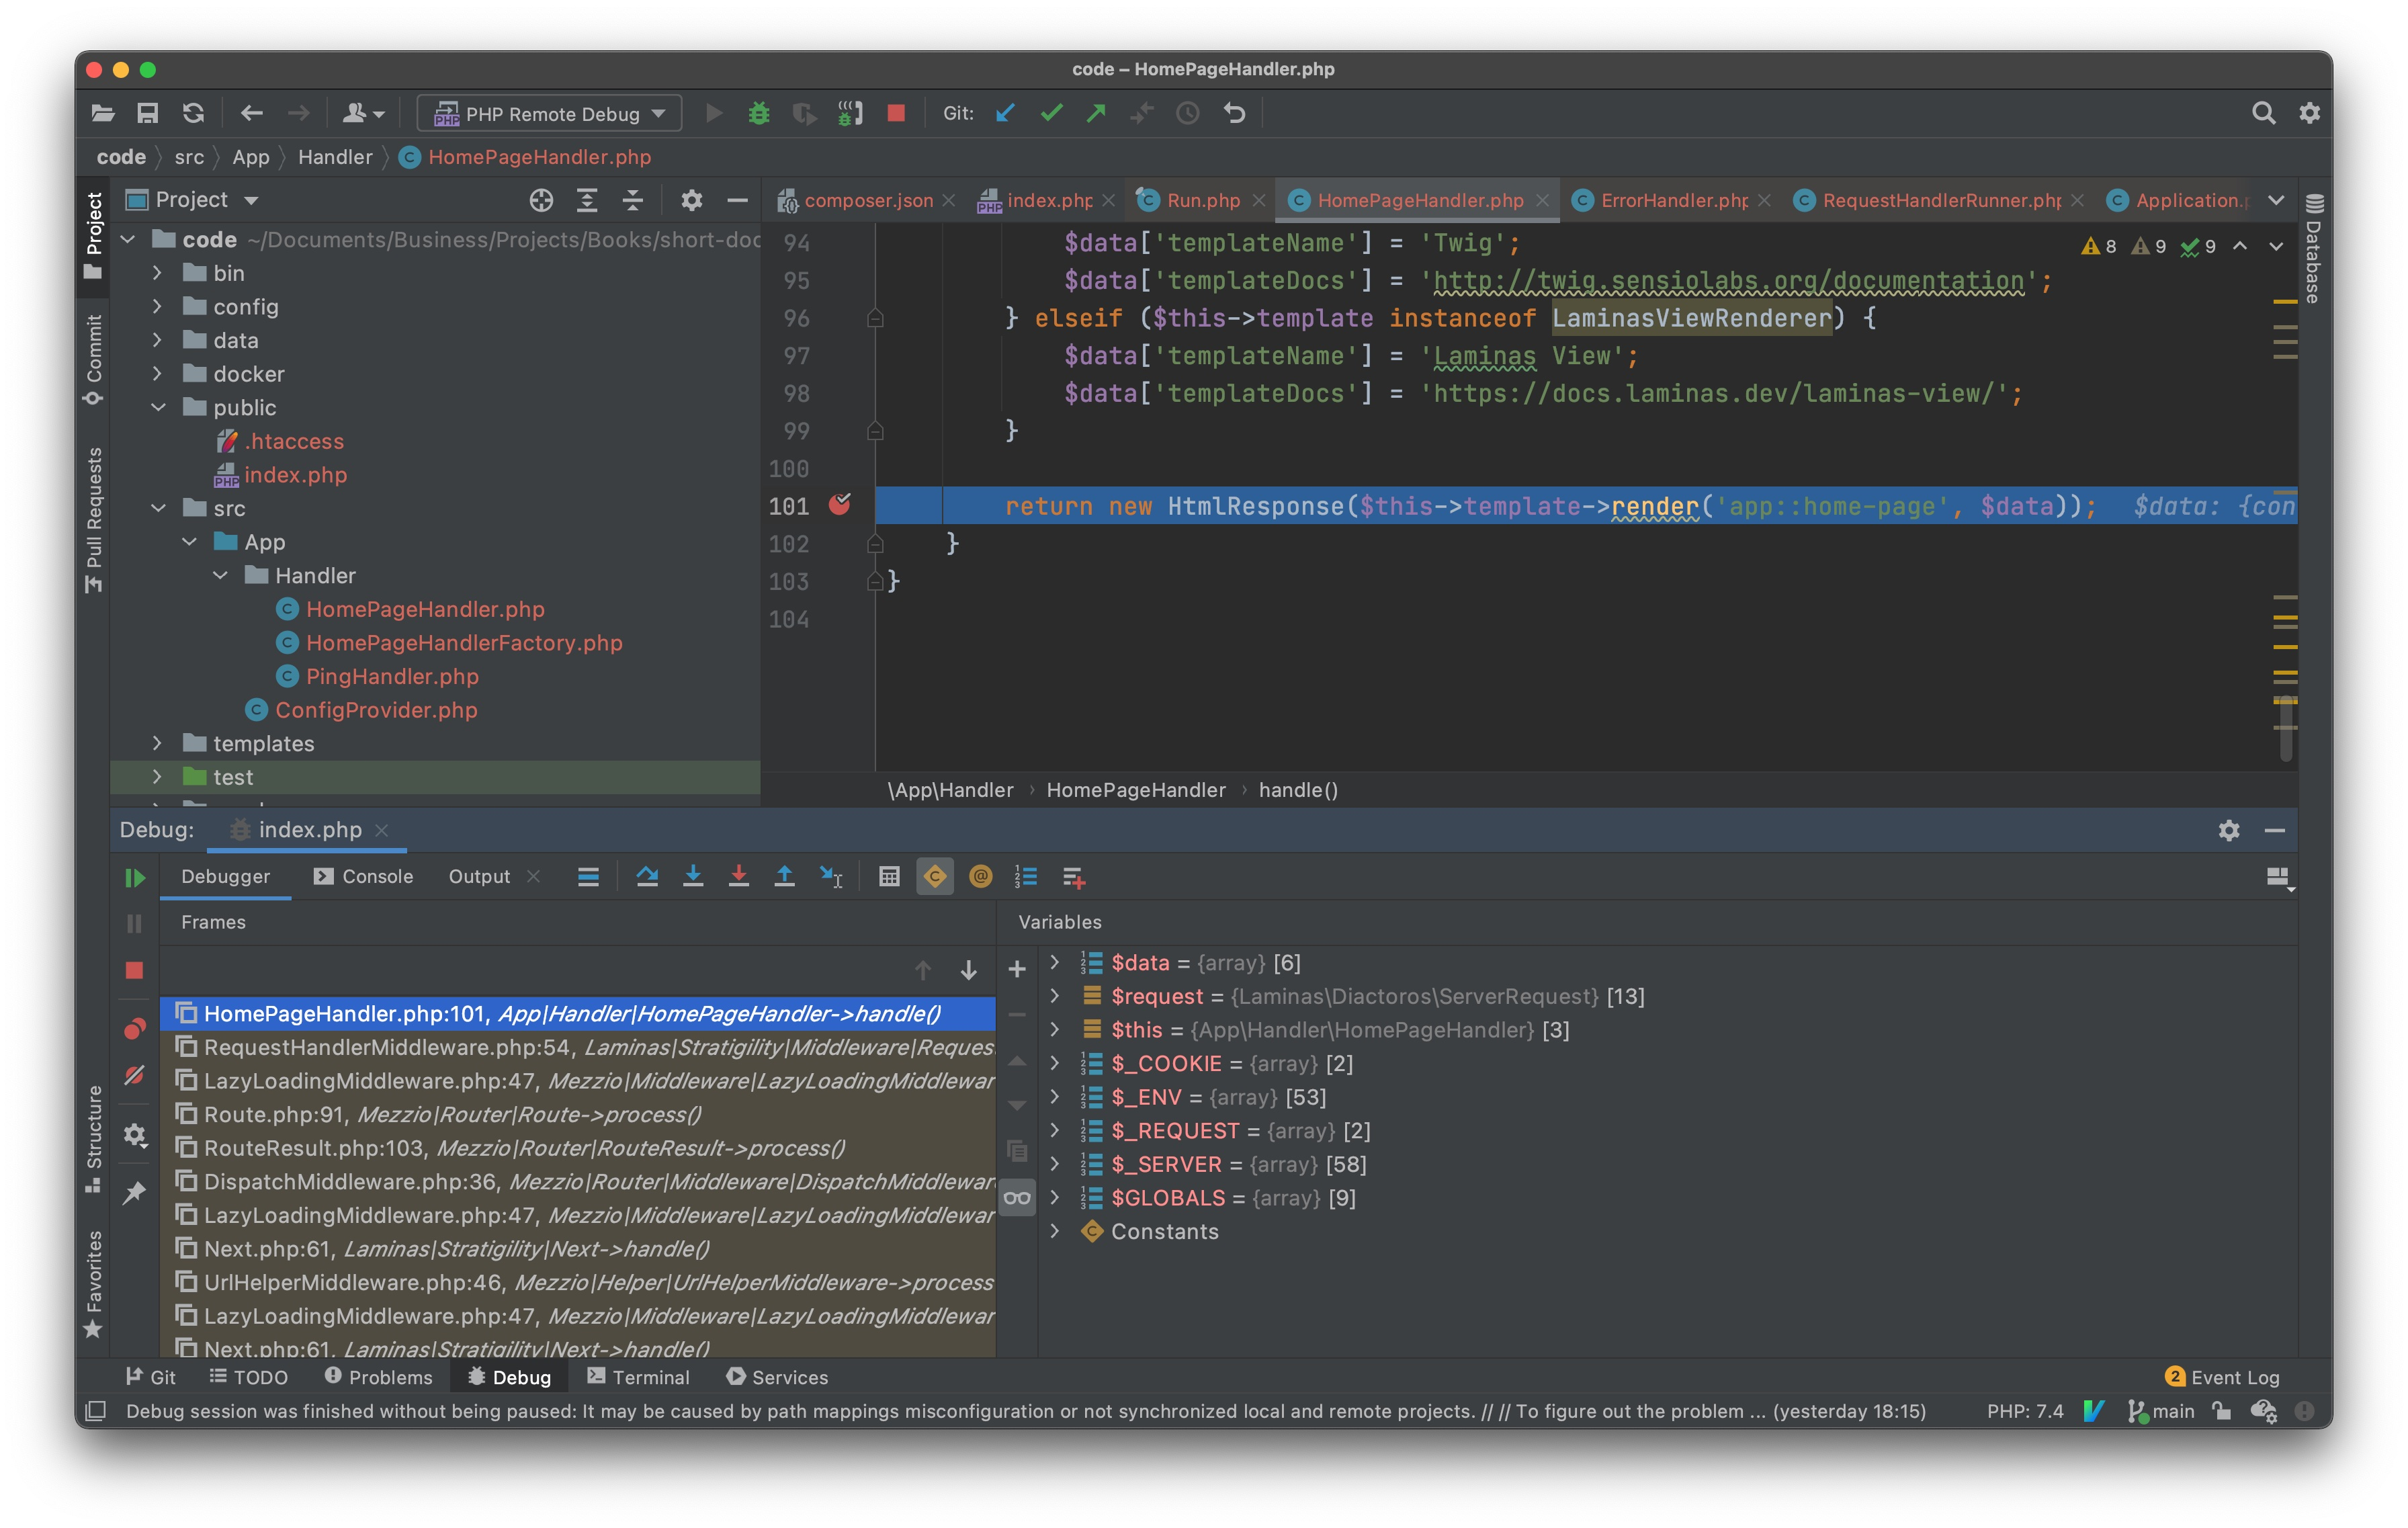 Stopped on a breakpoint in PhpStorm